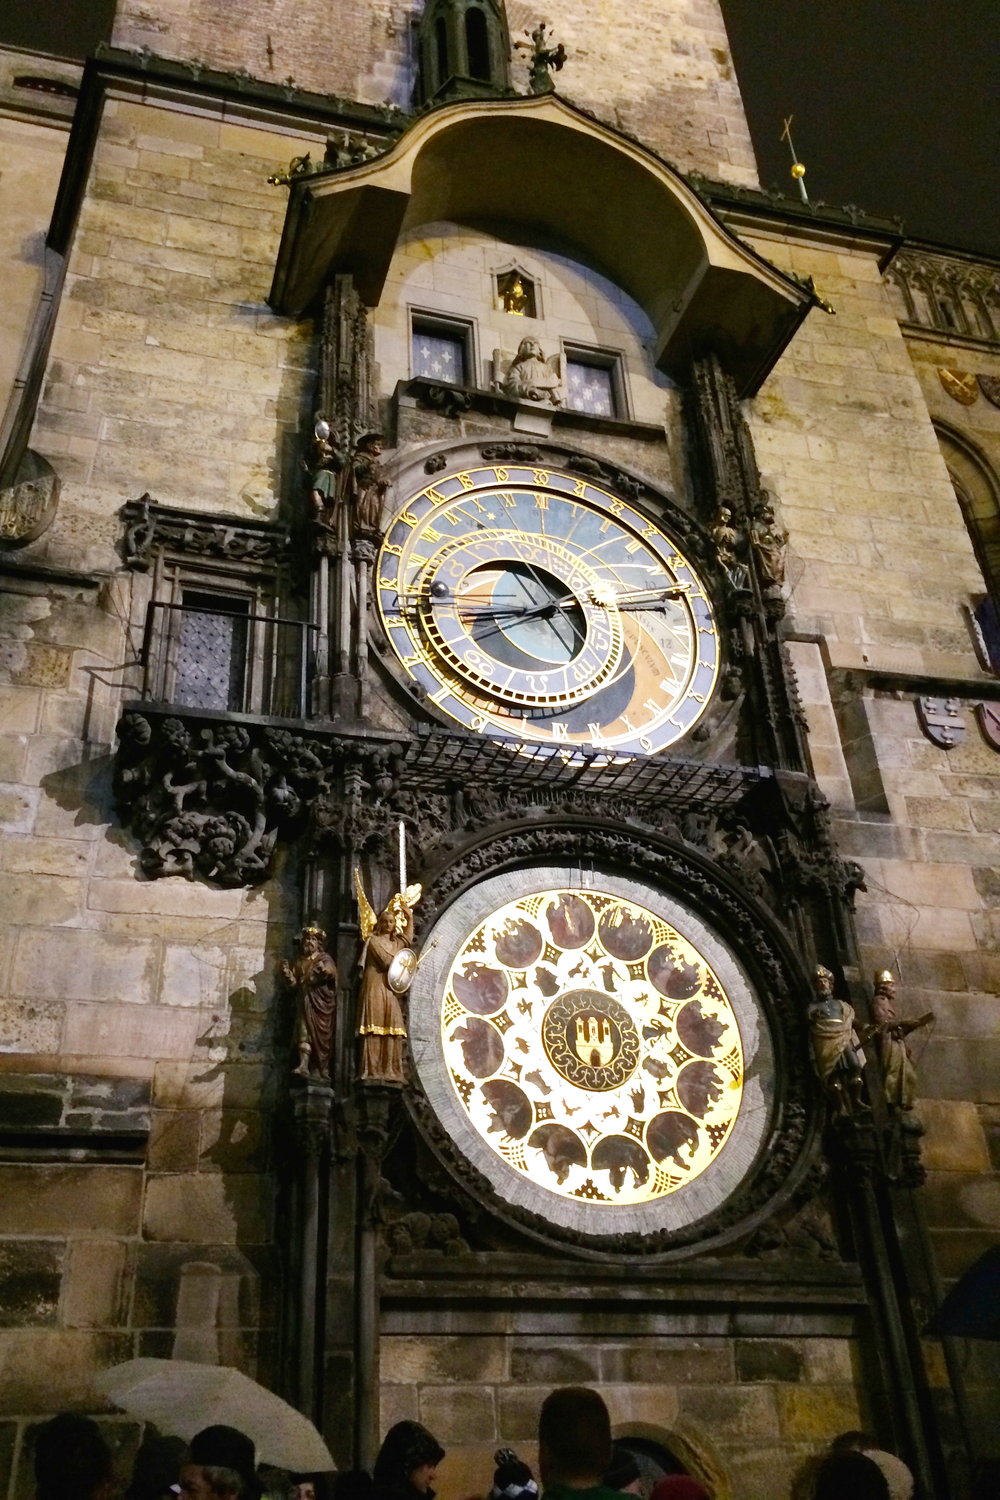 The famous Astronomical clock!